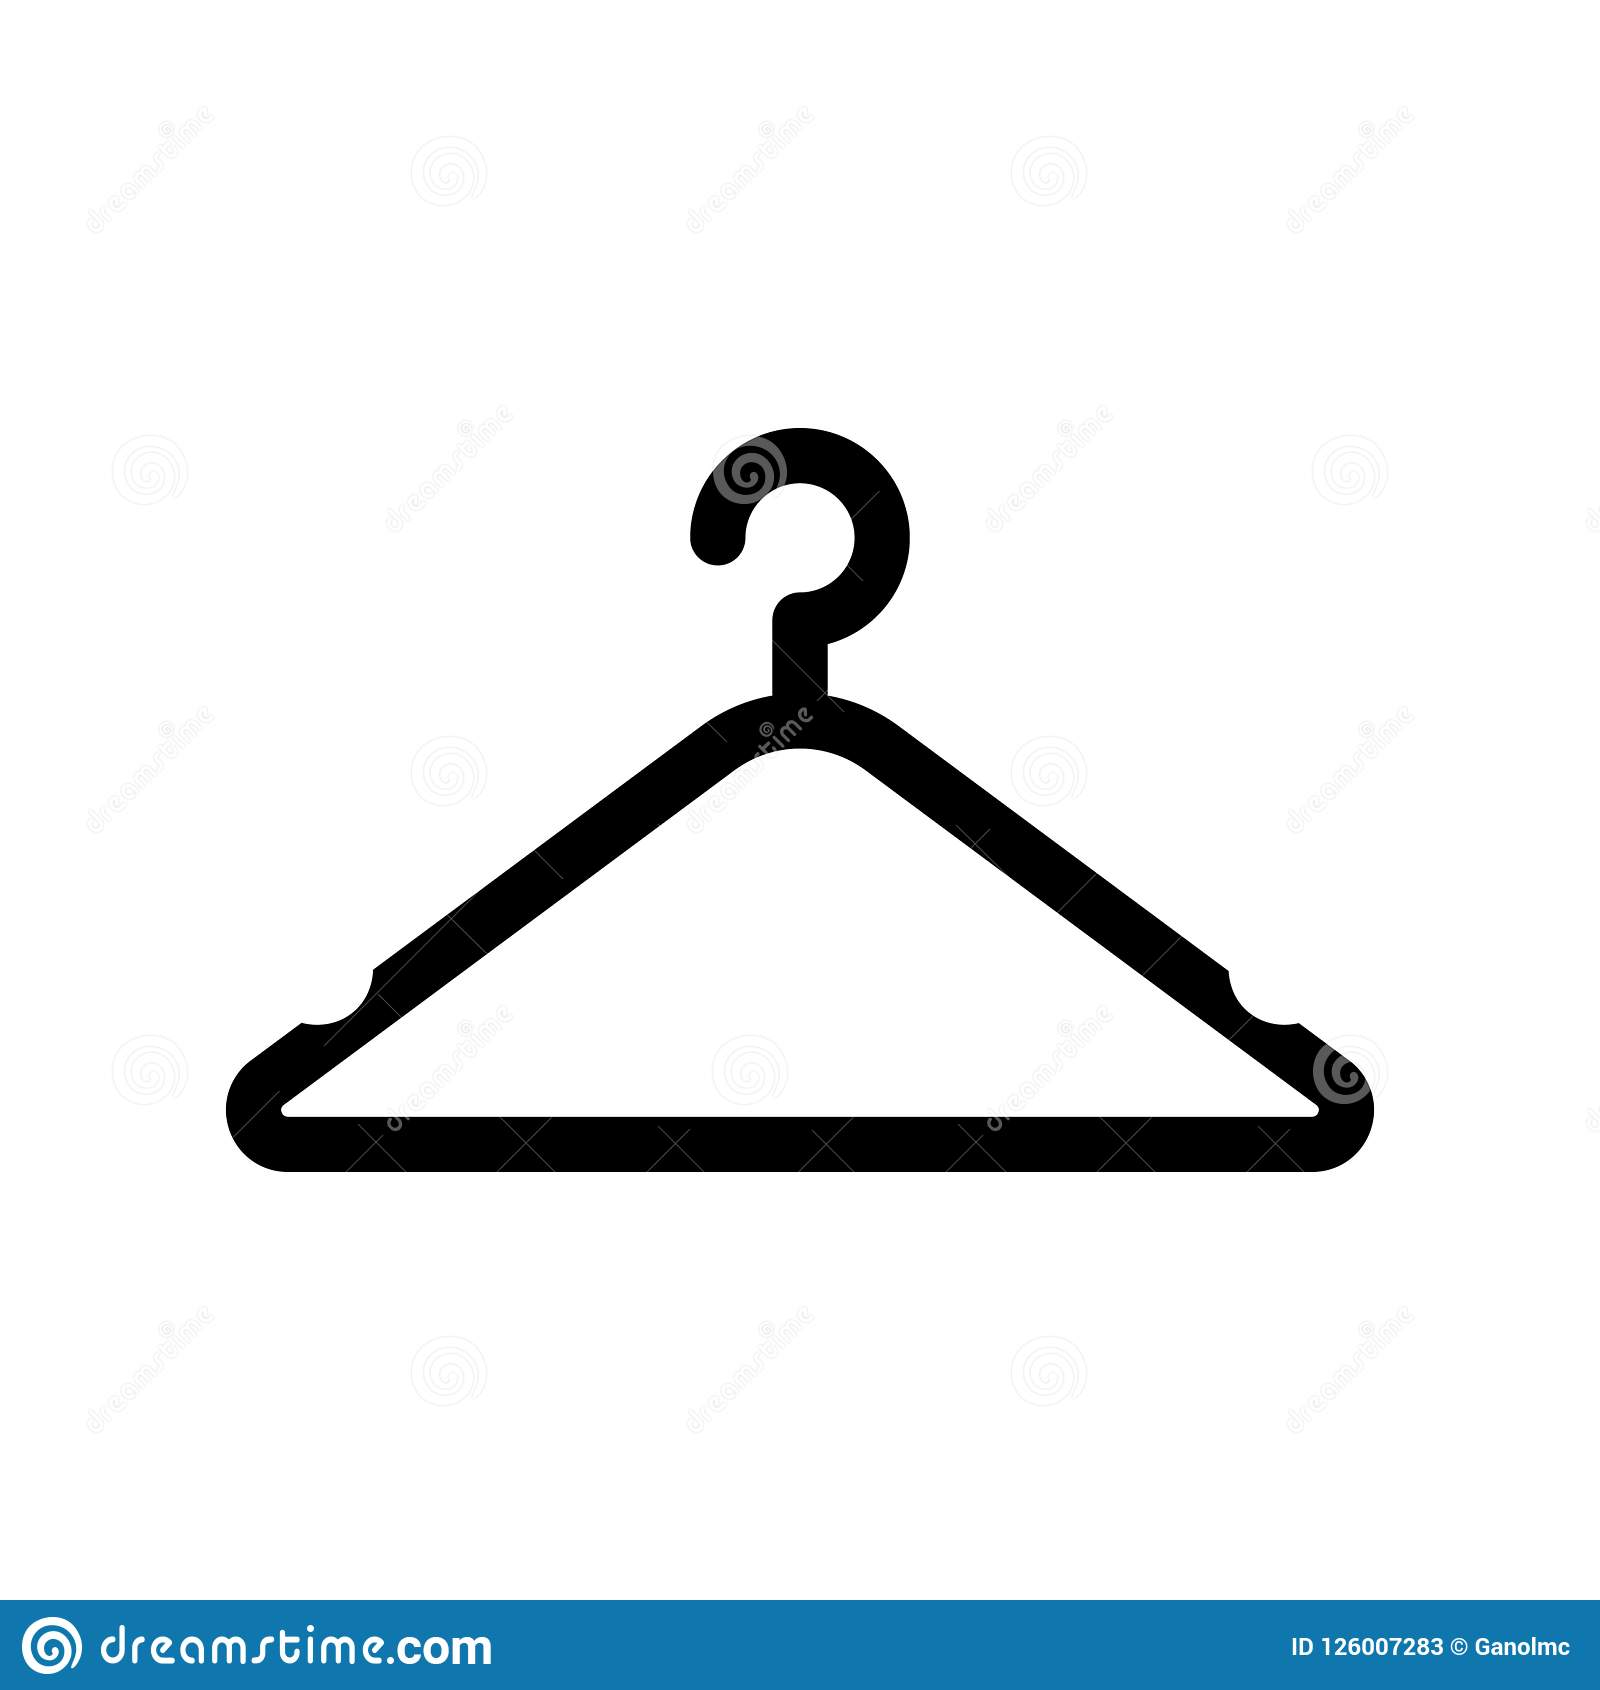 Clothes Hanger Iconctor Illustration Stock Vector Illustration